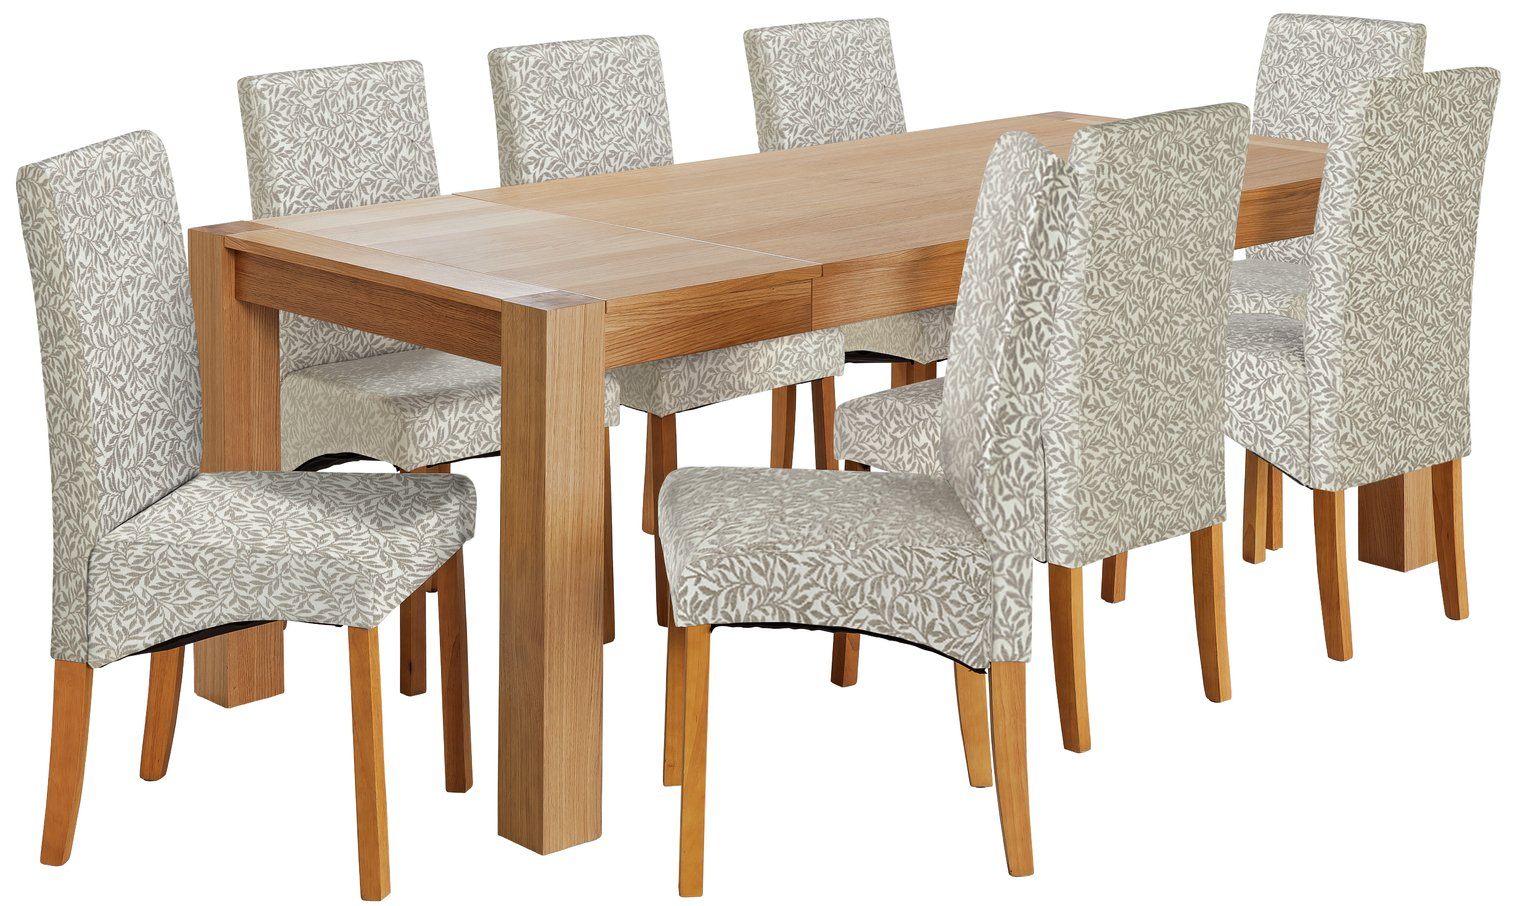 Argos Home Alston Oak Veneer Table & 8 Chairs - Floral